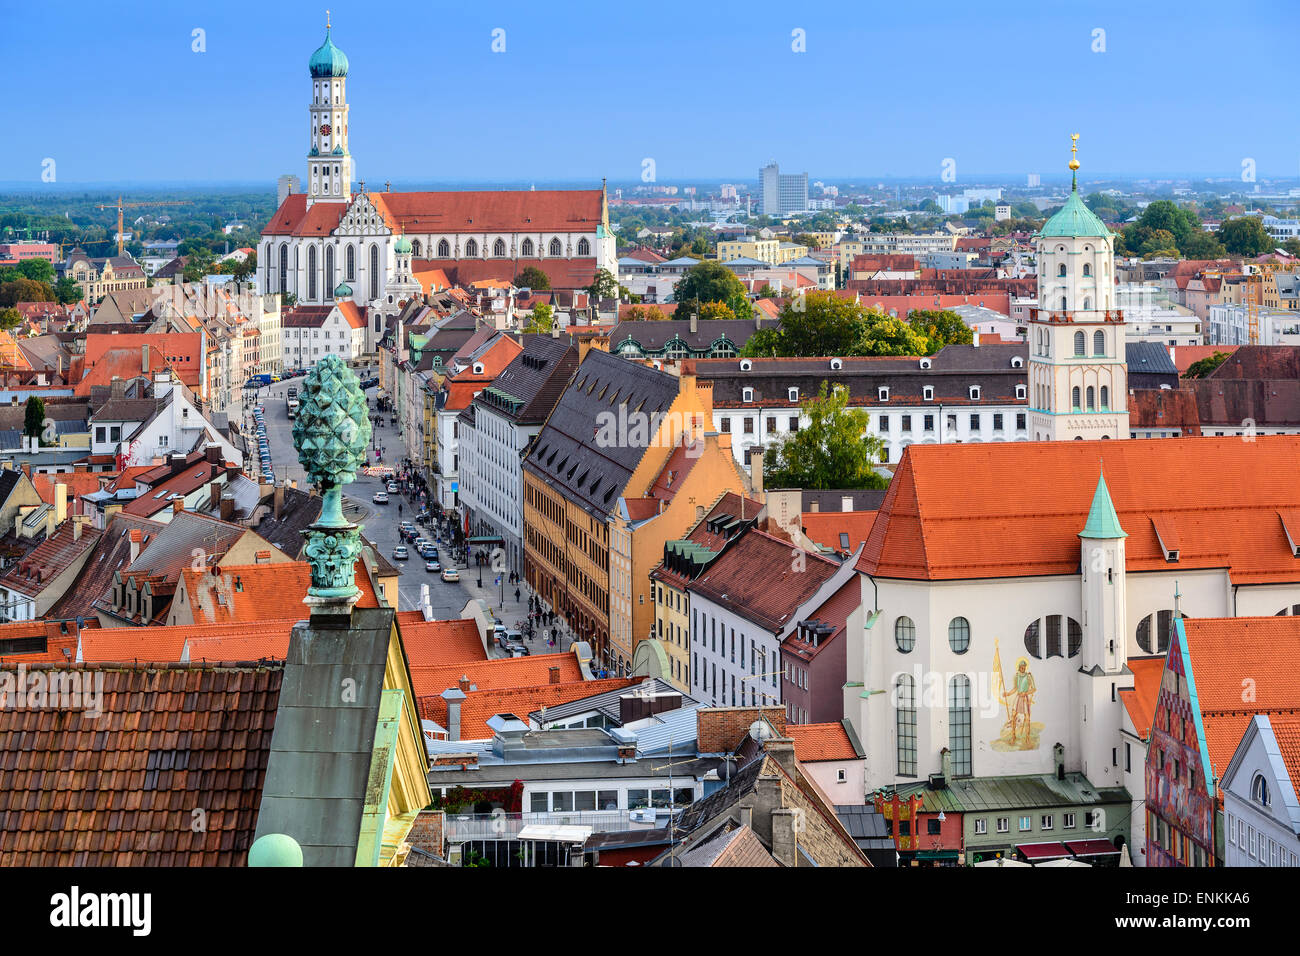 Augsburg, Allemagne vieille ville d'horizon. Photo Stock